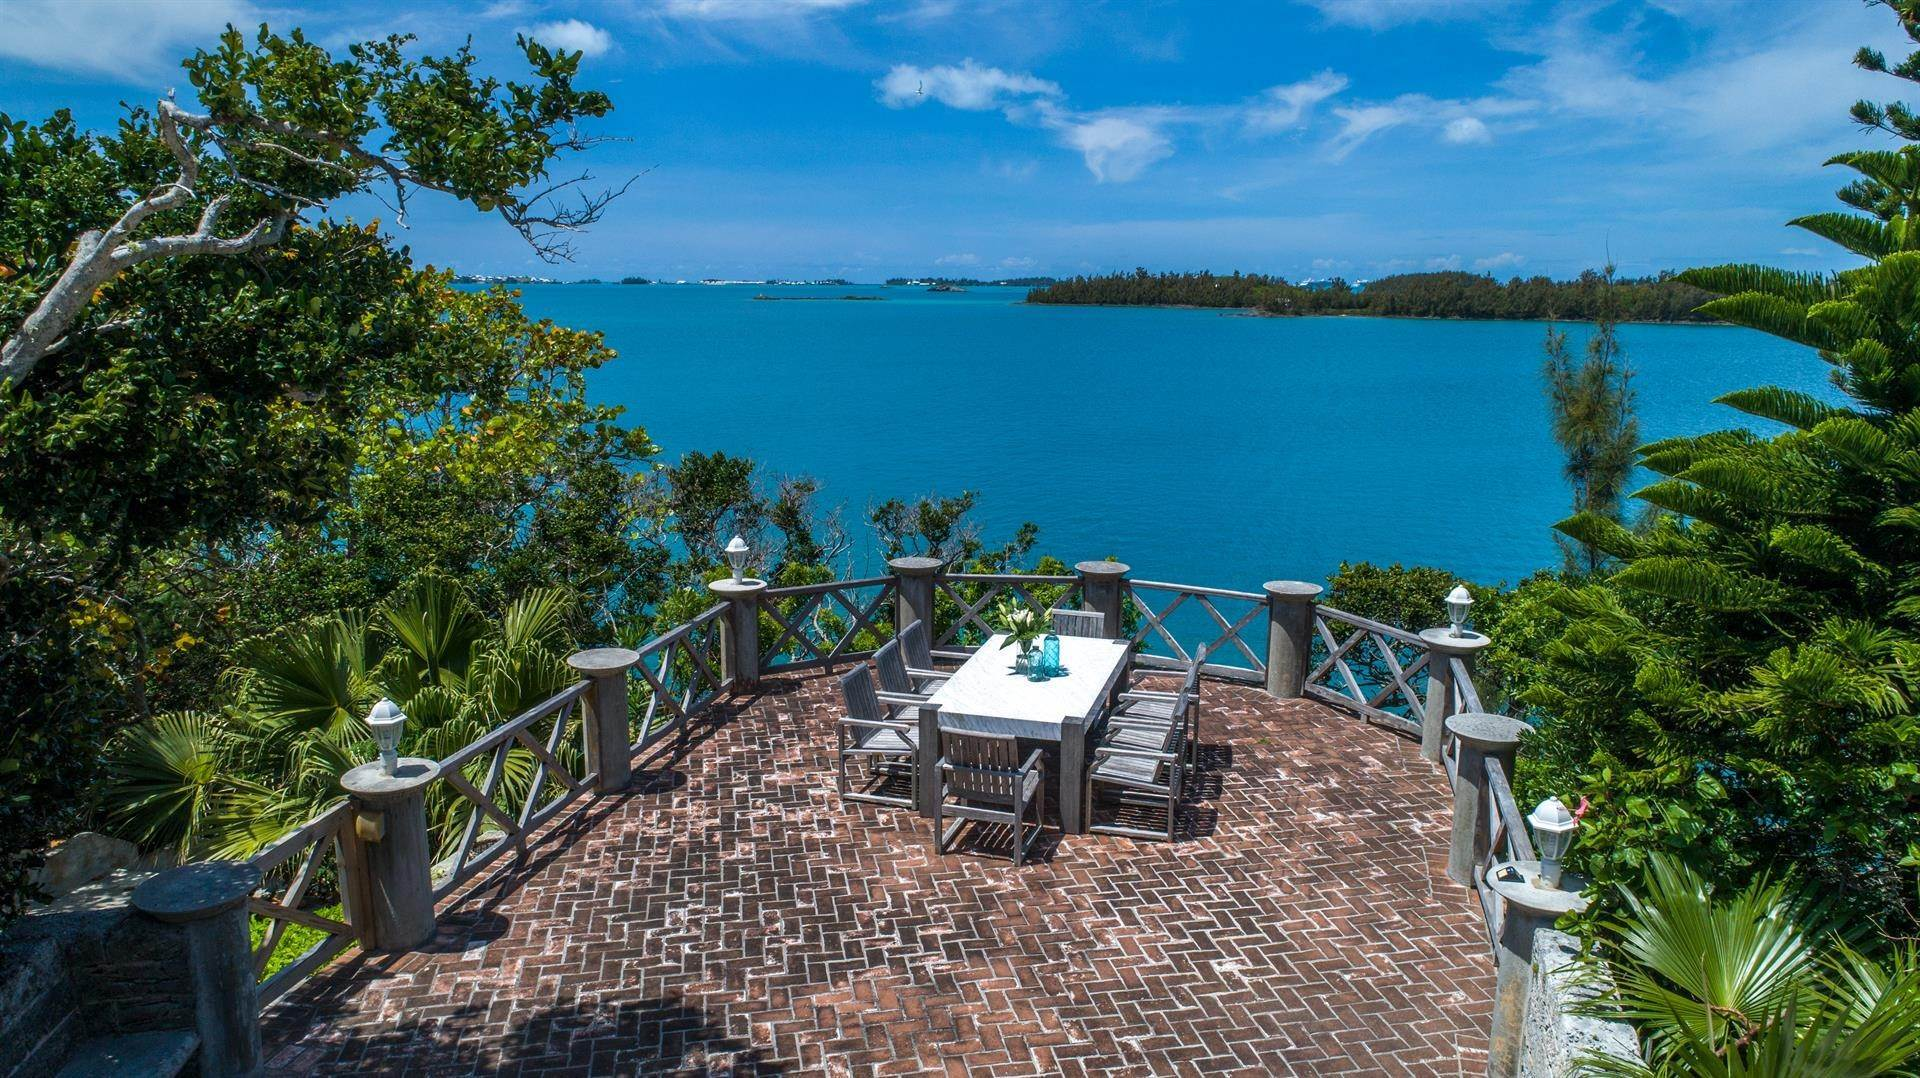 2. Vid Vattnet för Försäljning vid Heron Hill On The Great Sound Heron Hill On The Great Sound, 31 Riddell's Bay Road,Bermuda – Sinclair Realty